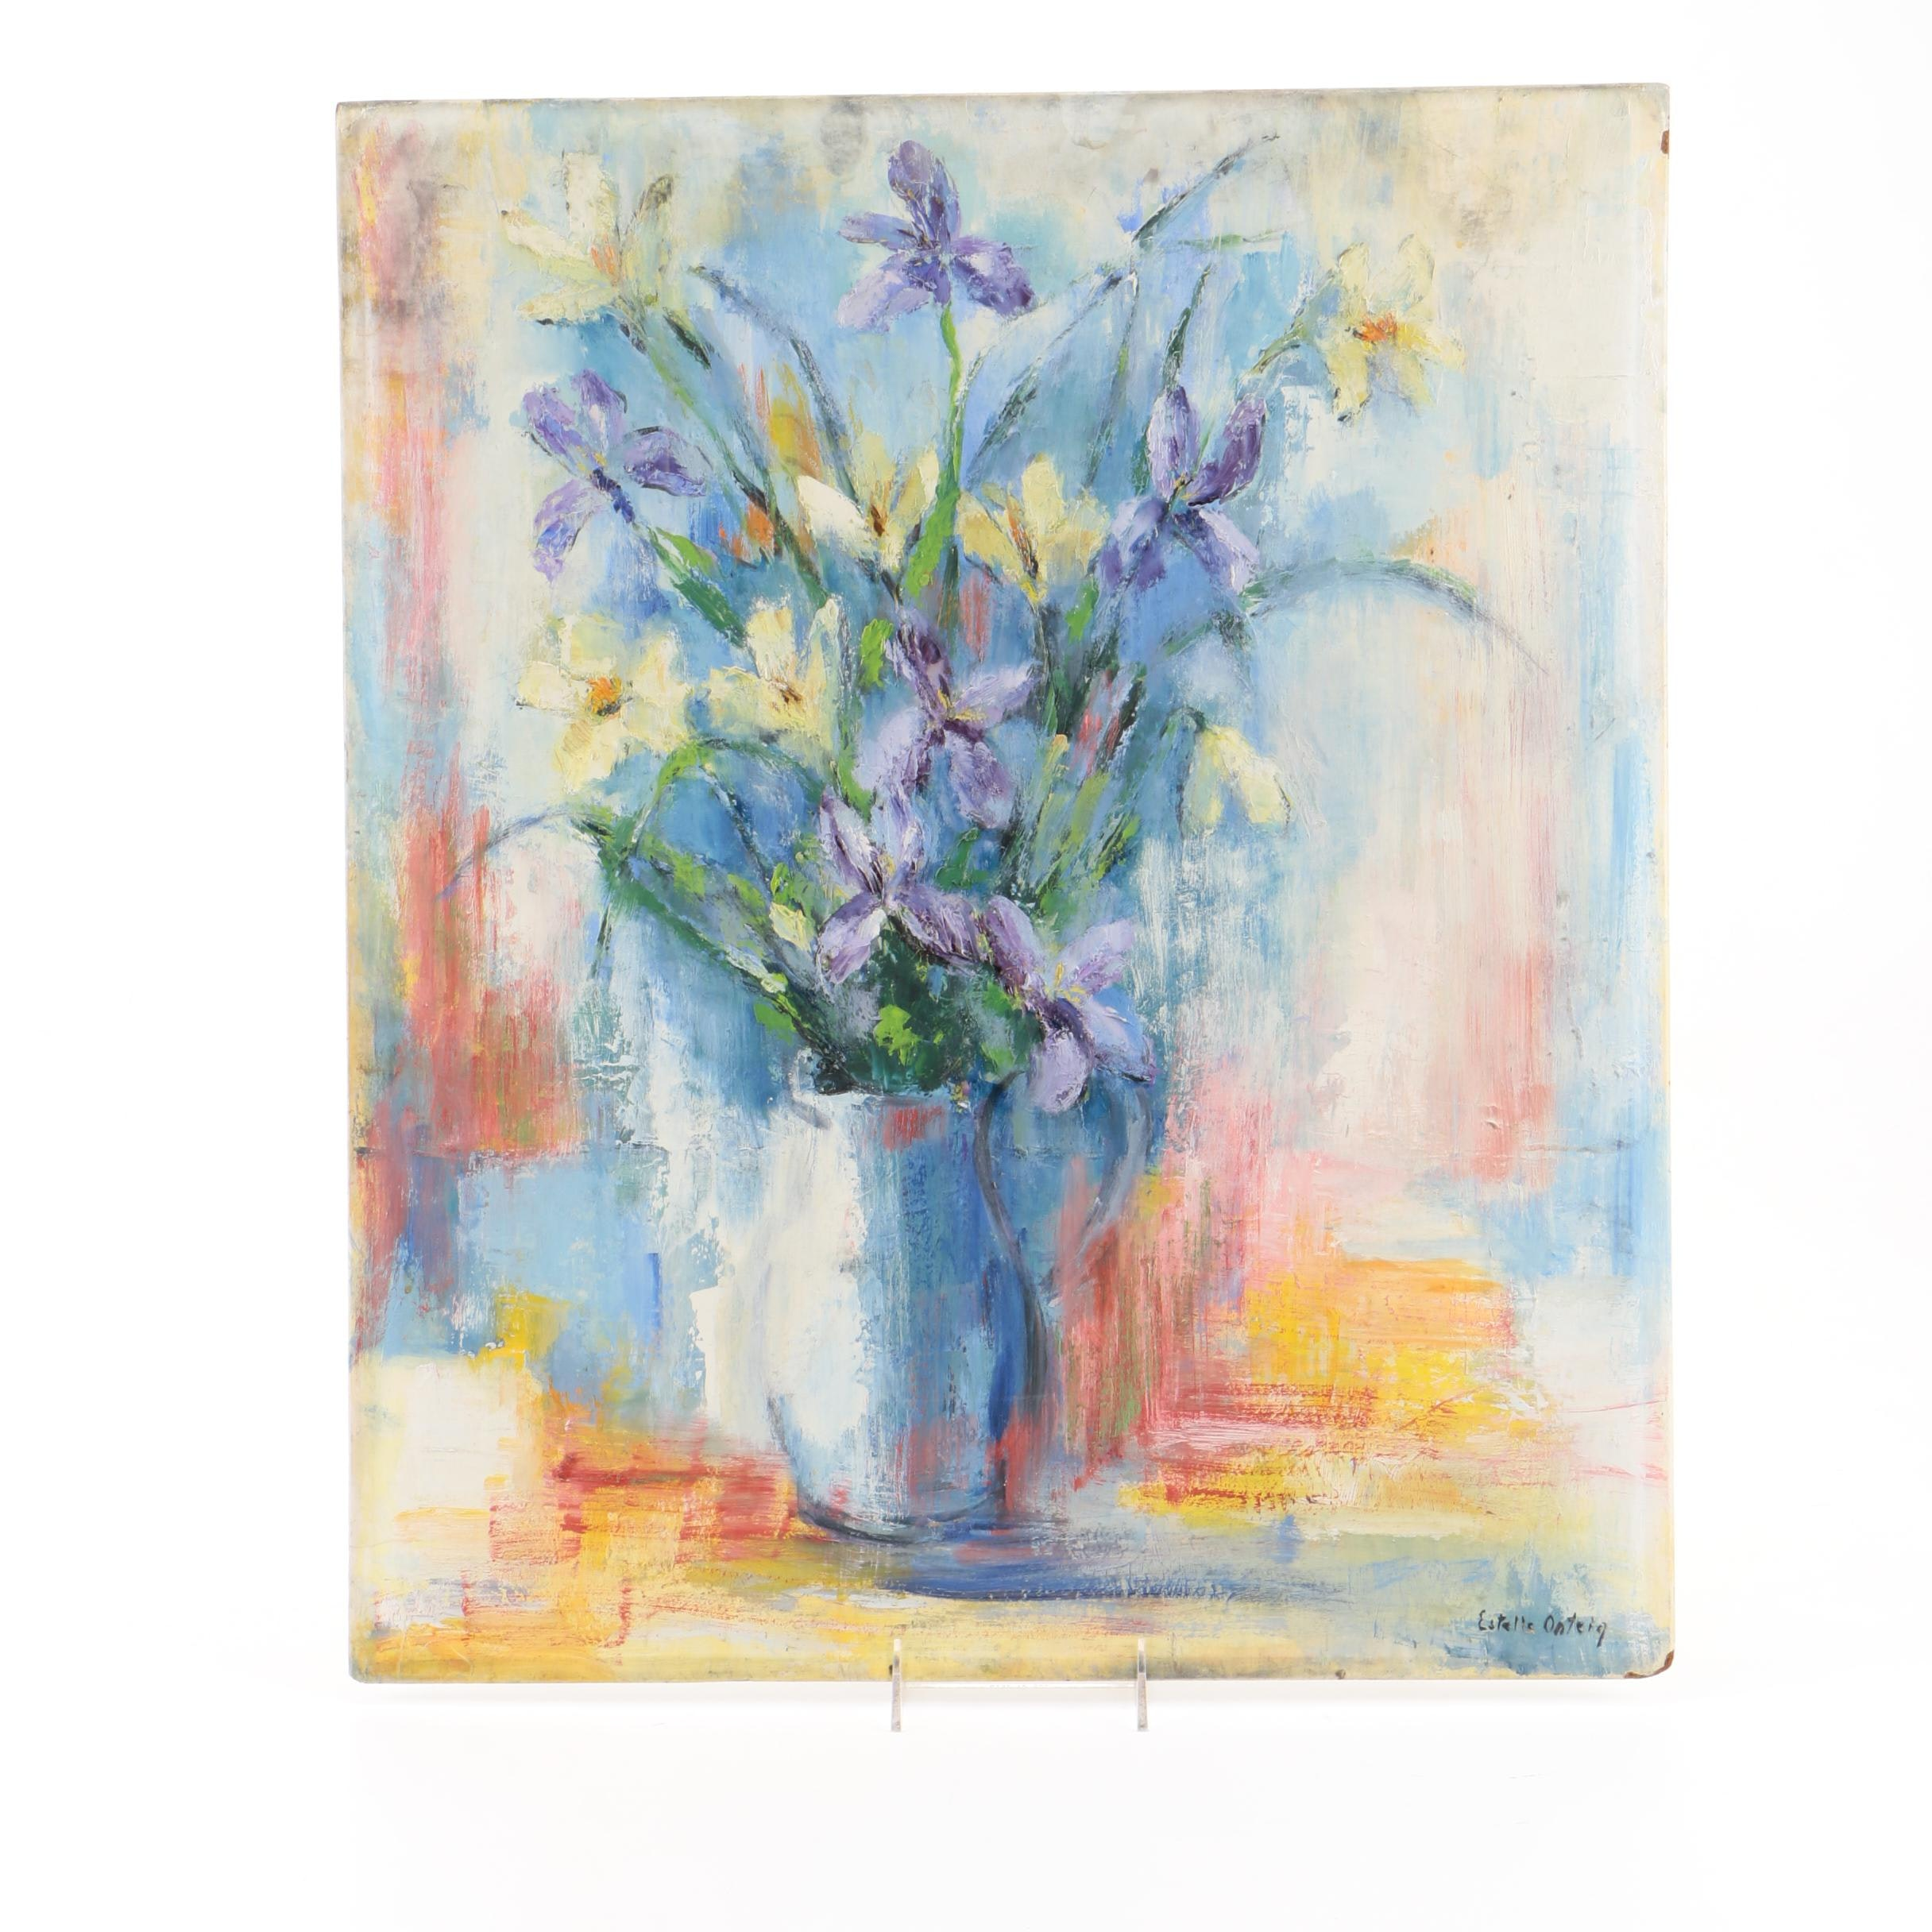 Estelle Onteig Oil Painting on Board of a Floral Still Life